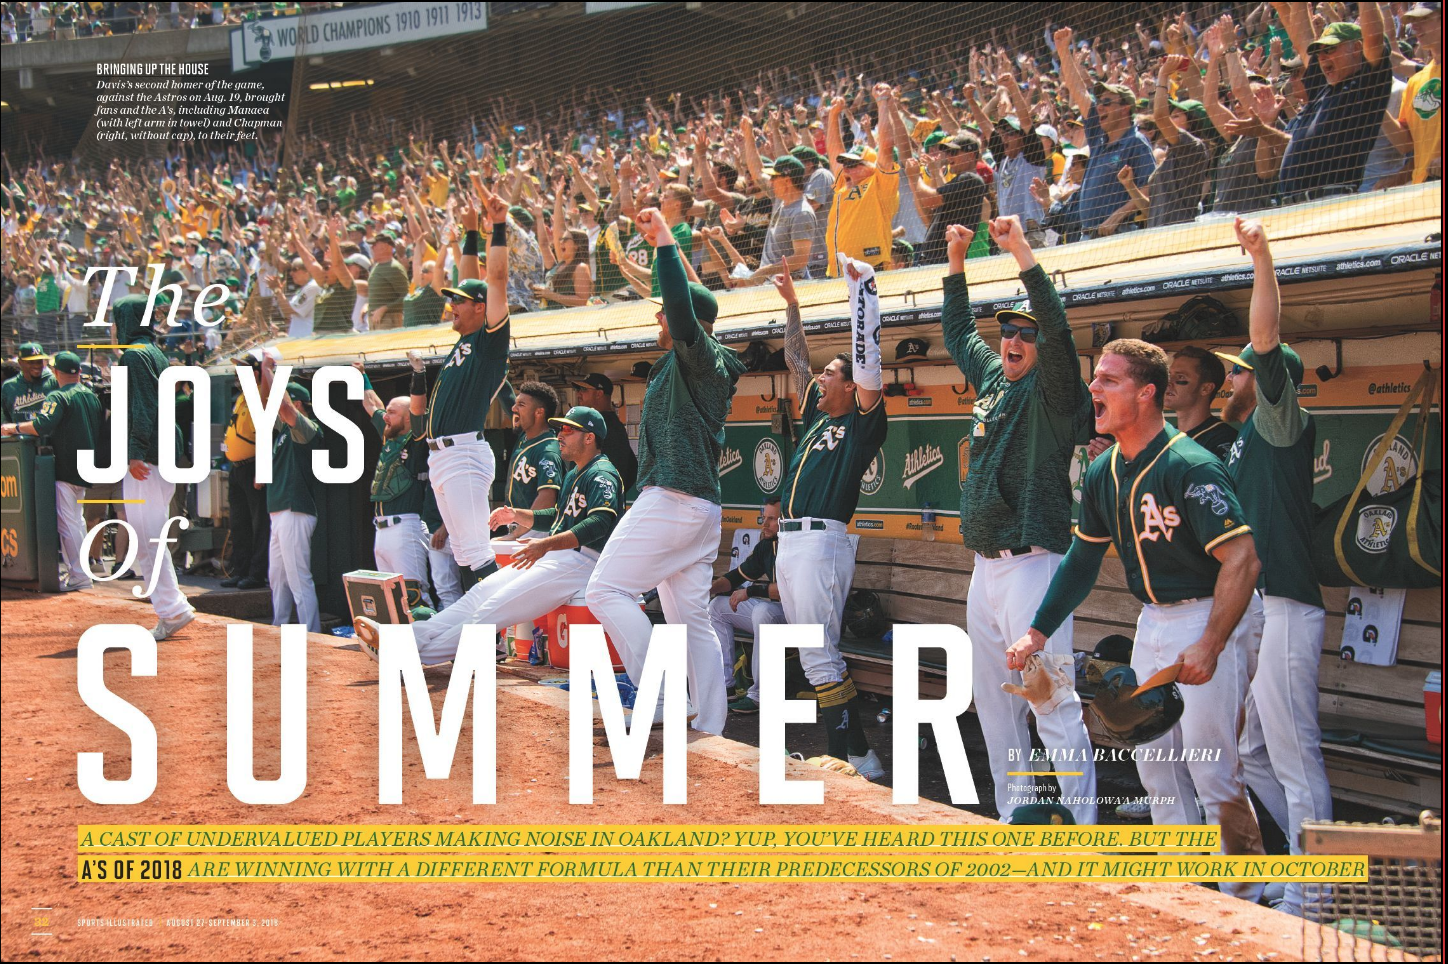 THE JOYS OF SUMMER - Figuring out the surprising success of the Oakland A's.(Aug. 27, 2018 issue; online.)